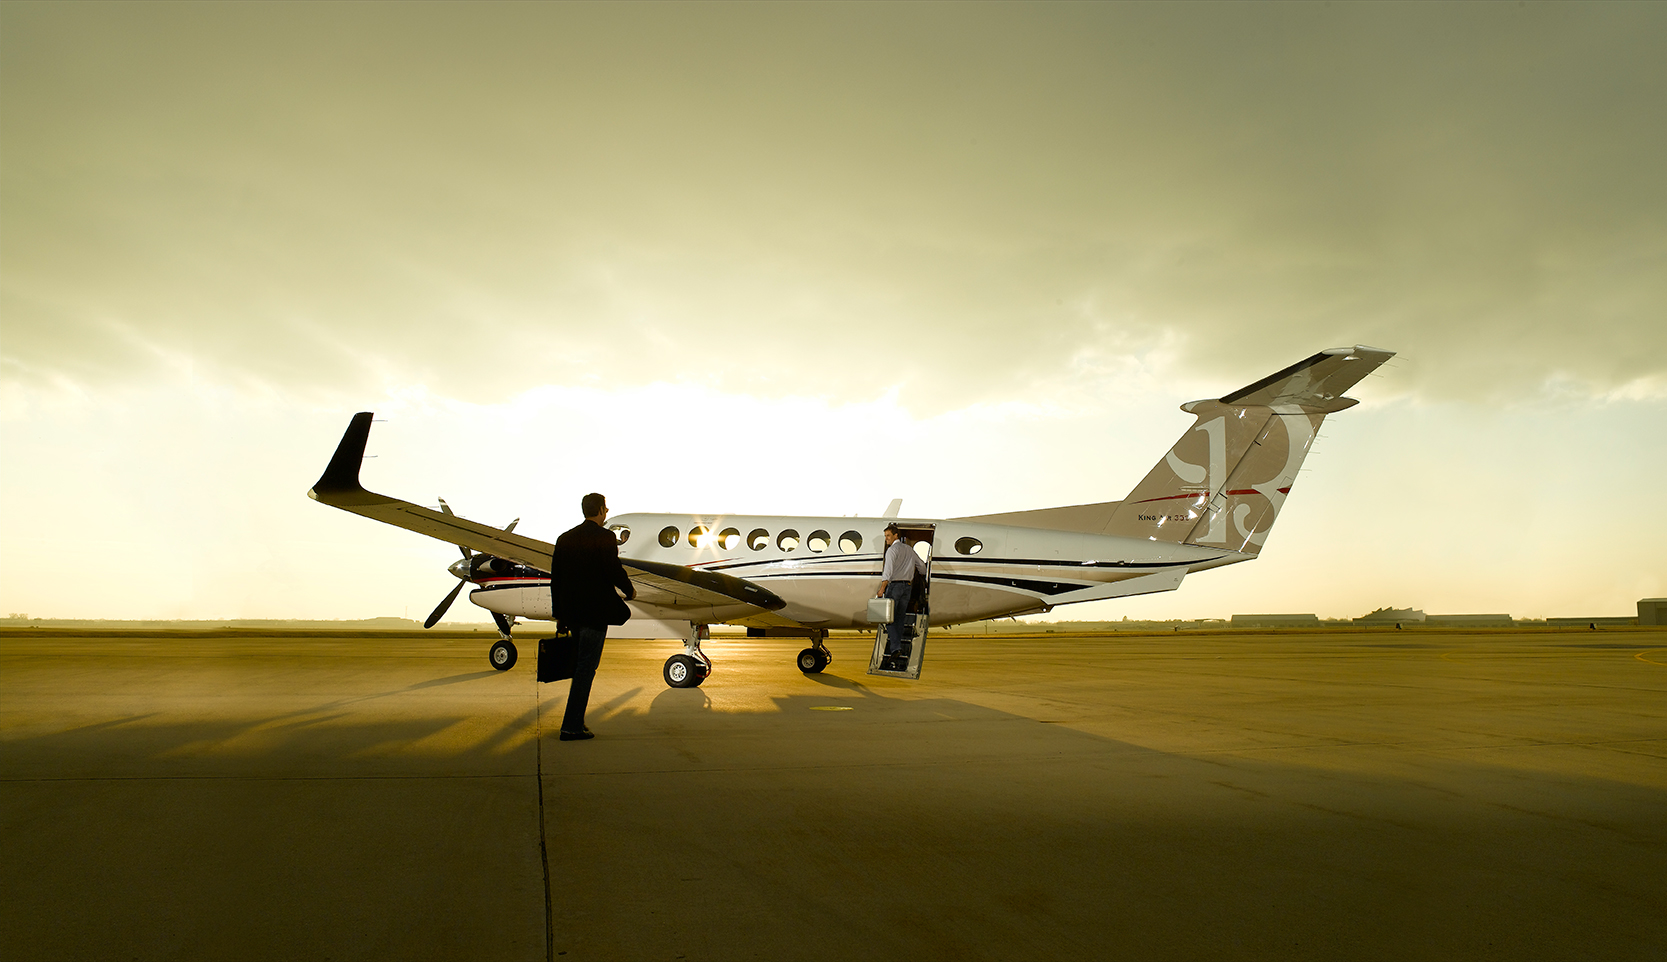 King Air 350 on ramp